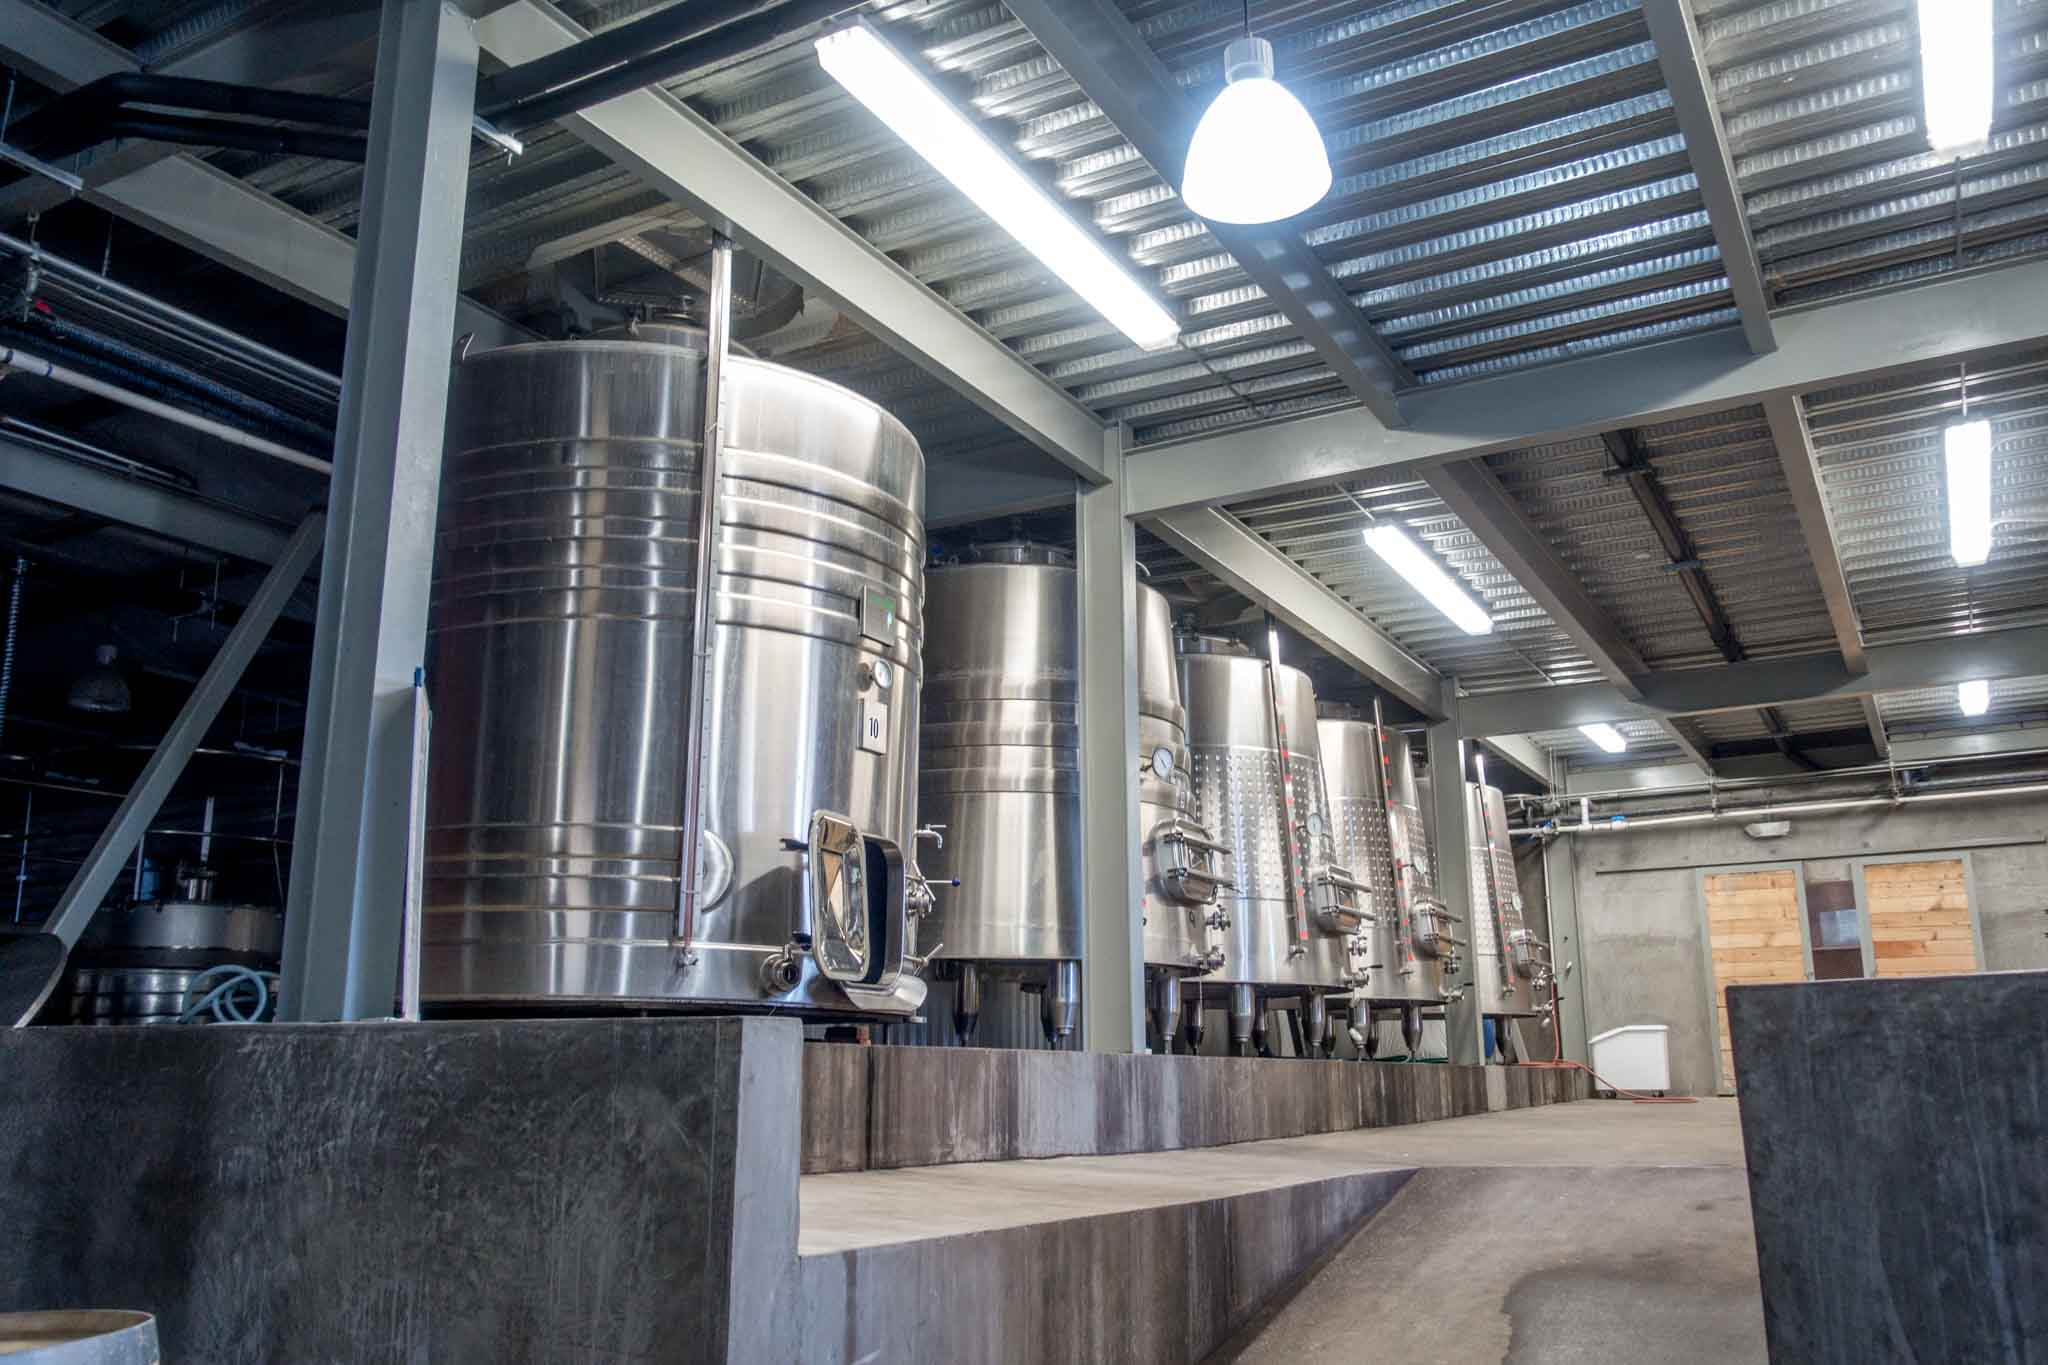 Steel production tanks at a winery